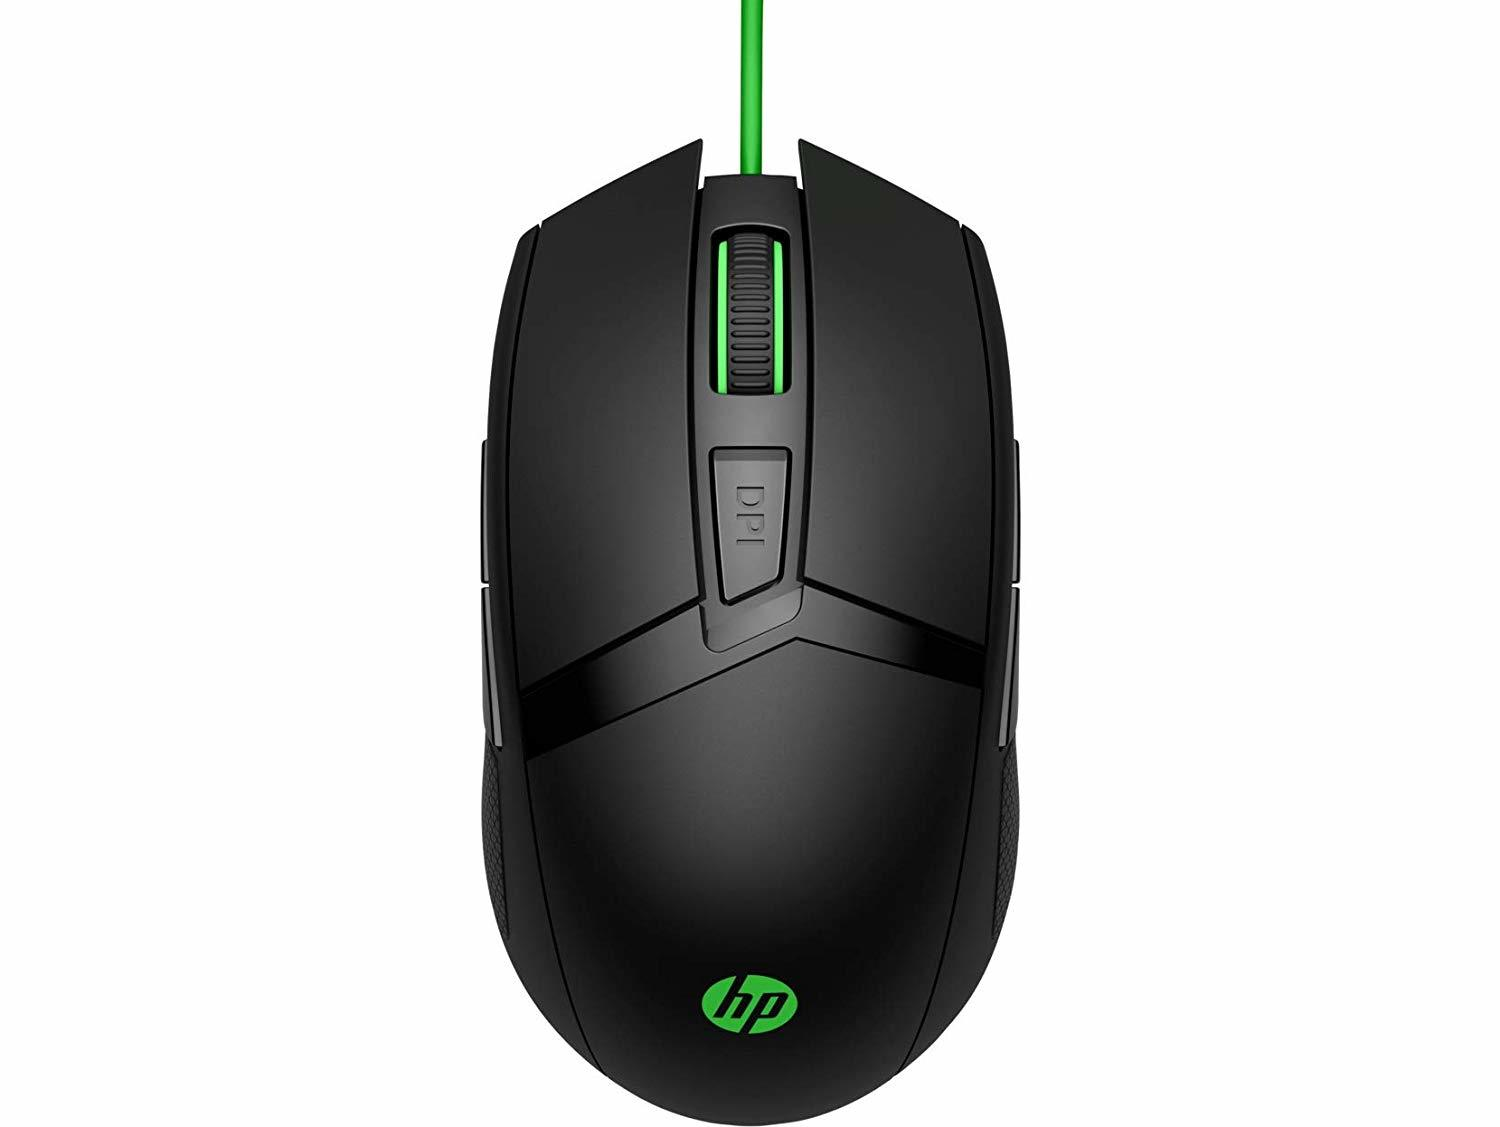 HP 300 Pavilion Gaming Mouse (Green Cable) for PC image